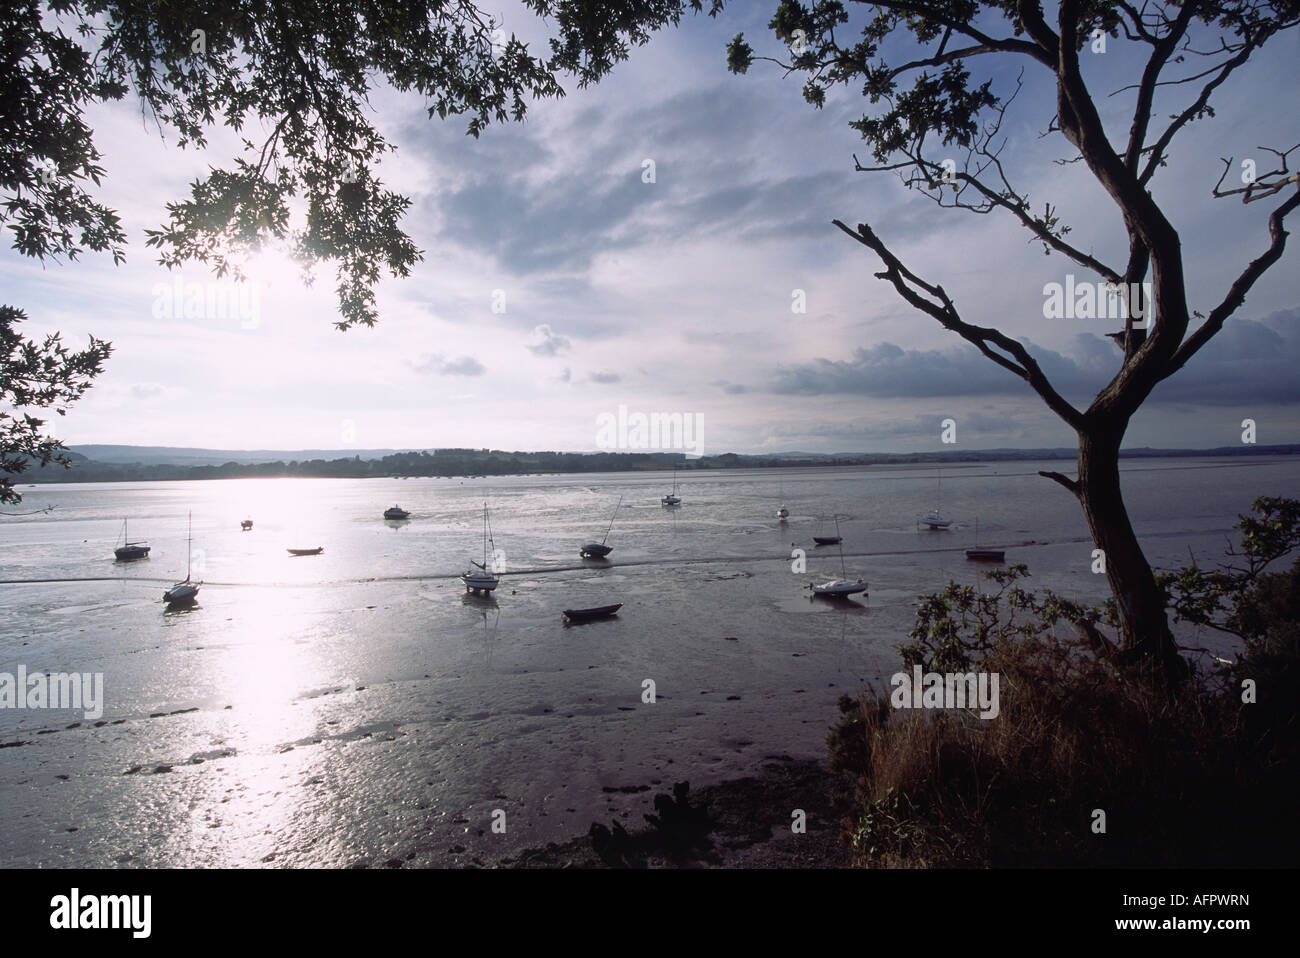 The Exe Estuary at Lympstone Devon during Low Tide with Assorted Small Boats on the Exposed Mud Photographed into - Stock Image